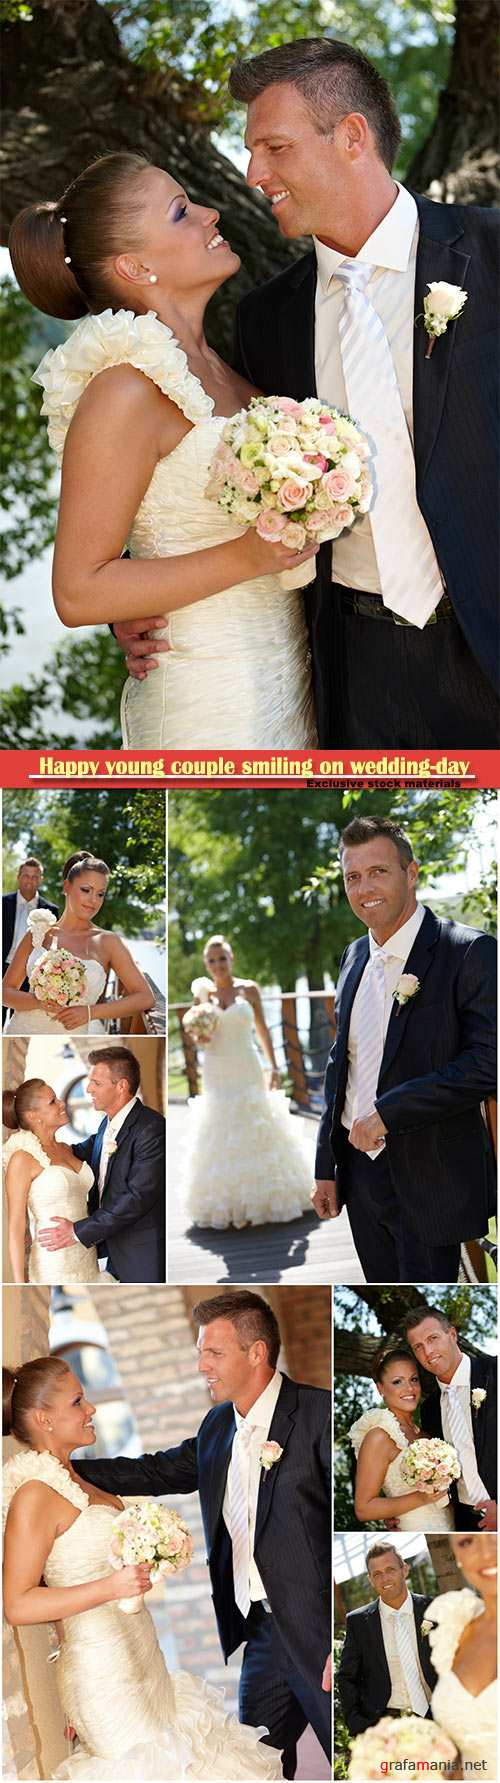 Happy young couple smiling on wedding-day